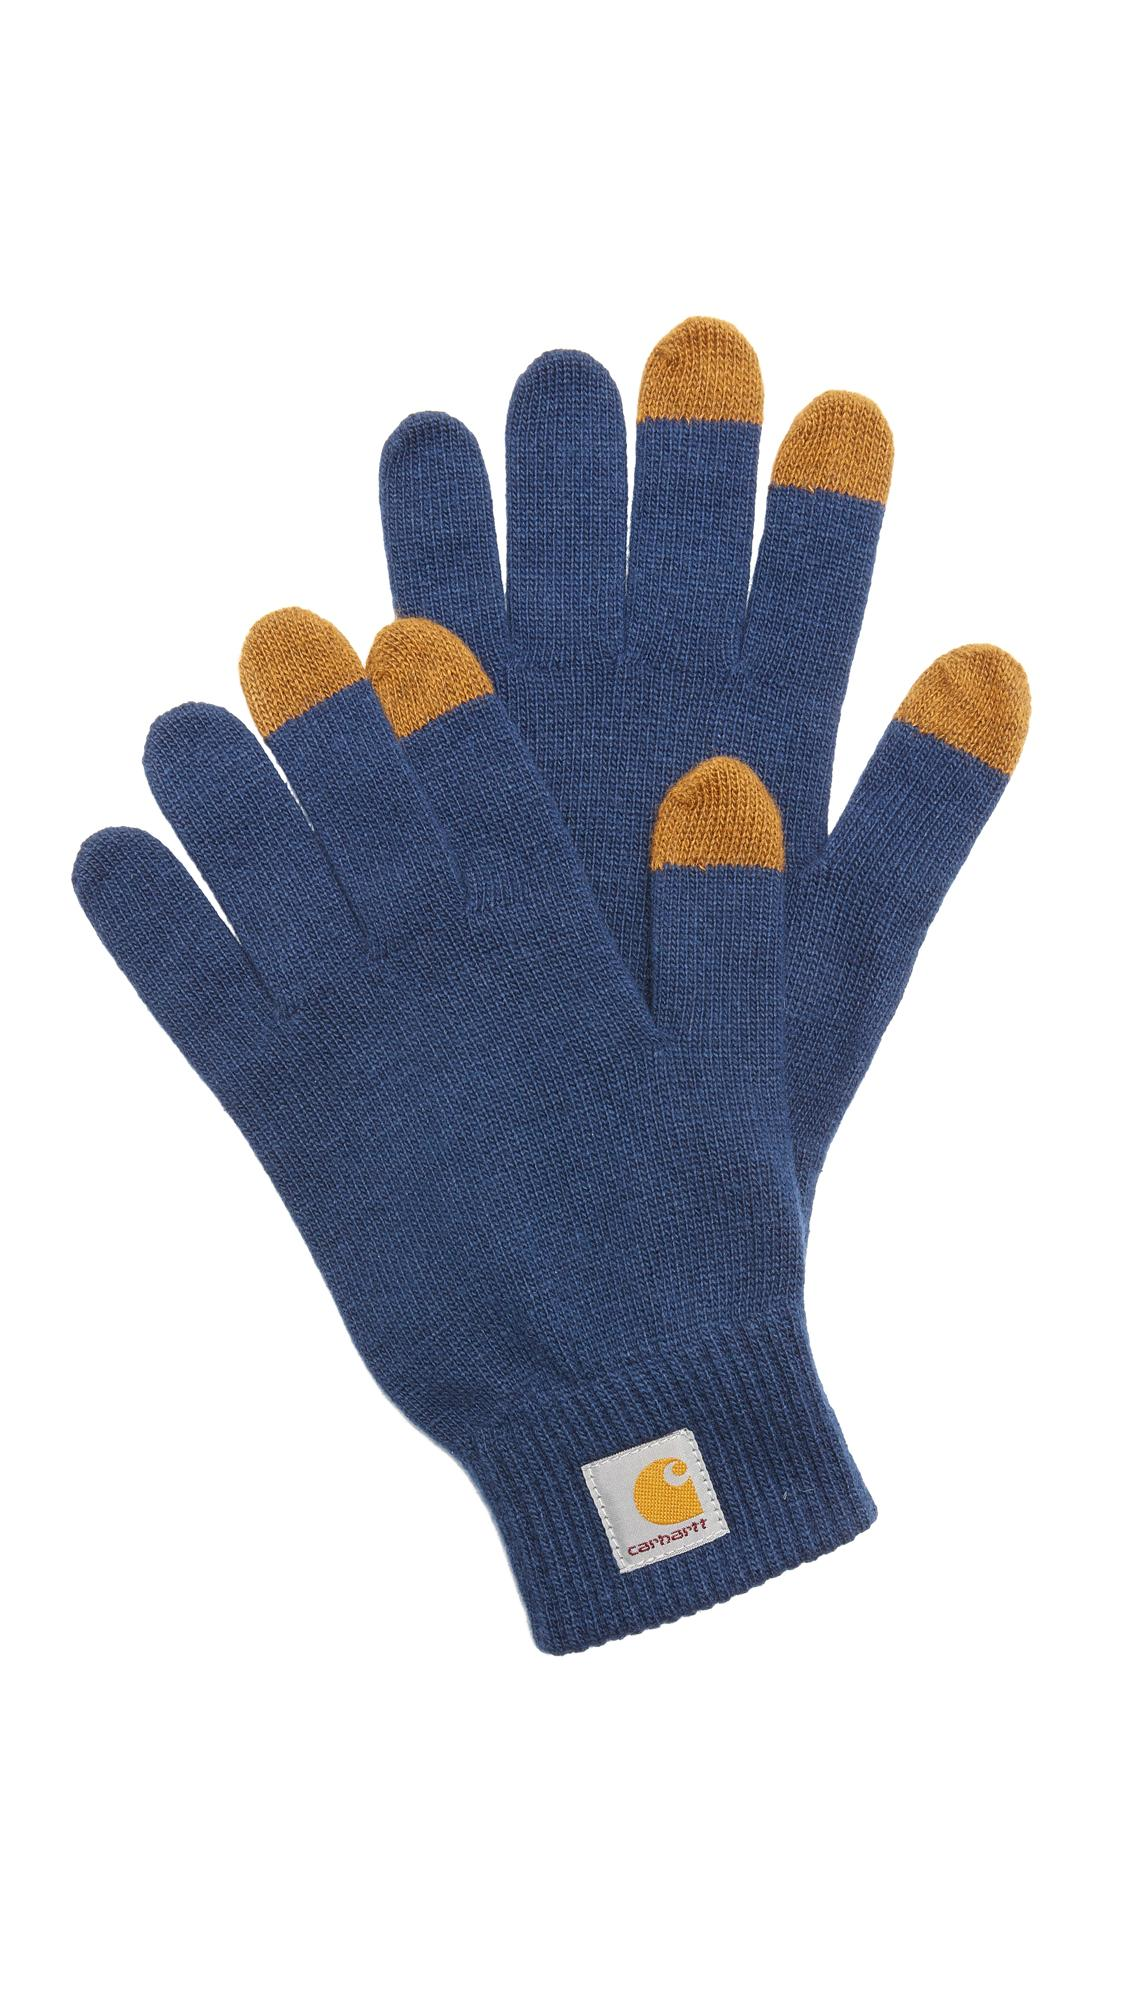 Carhartt Wip Touch Screen Gloves in Blue for Men